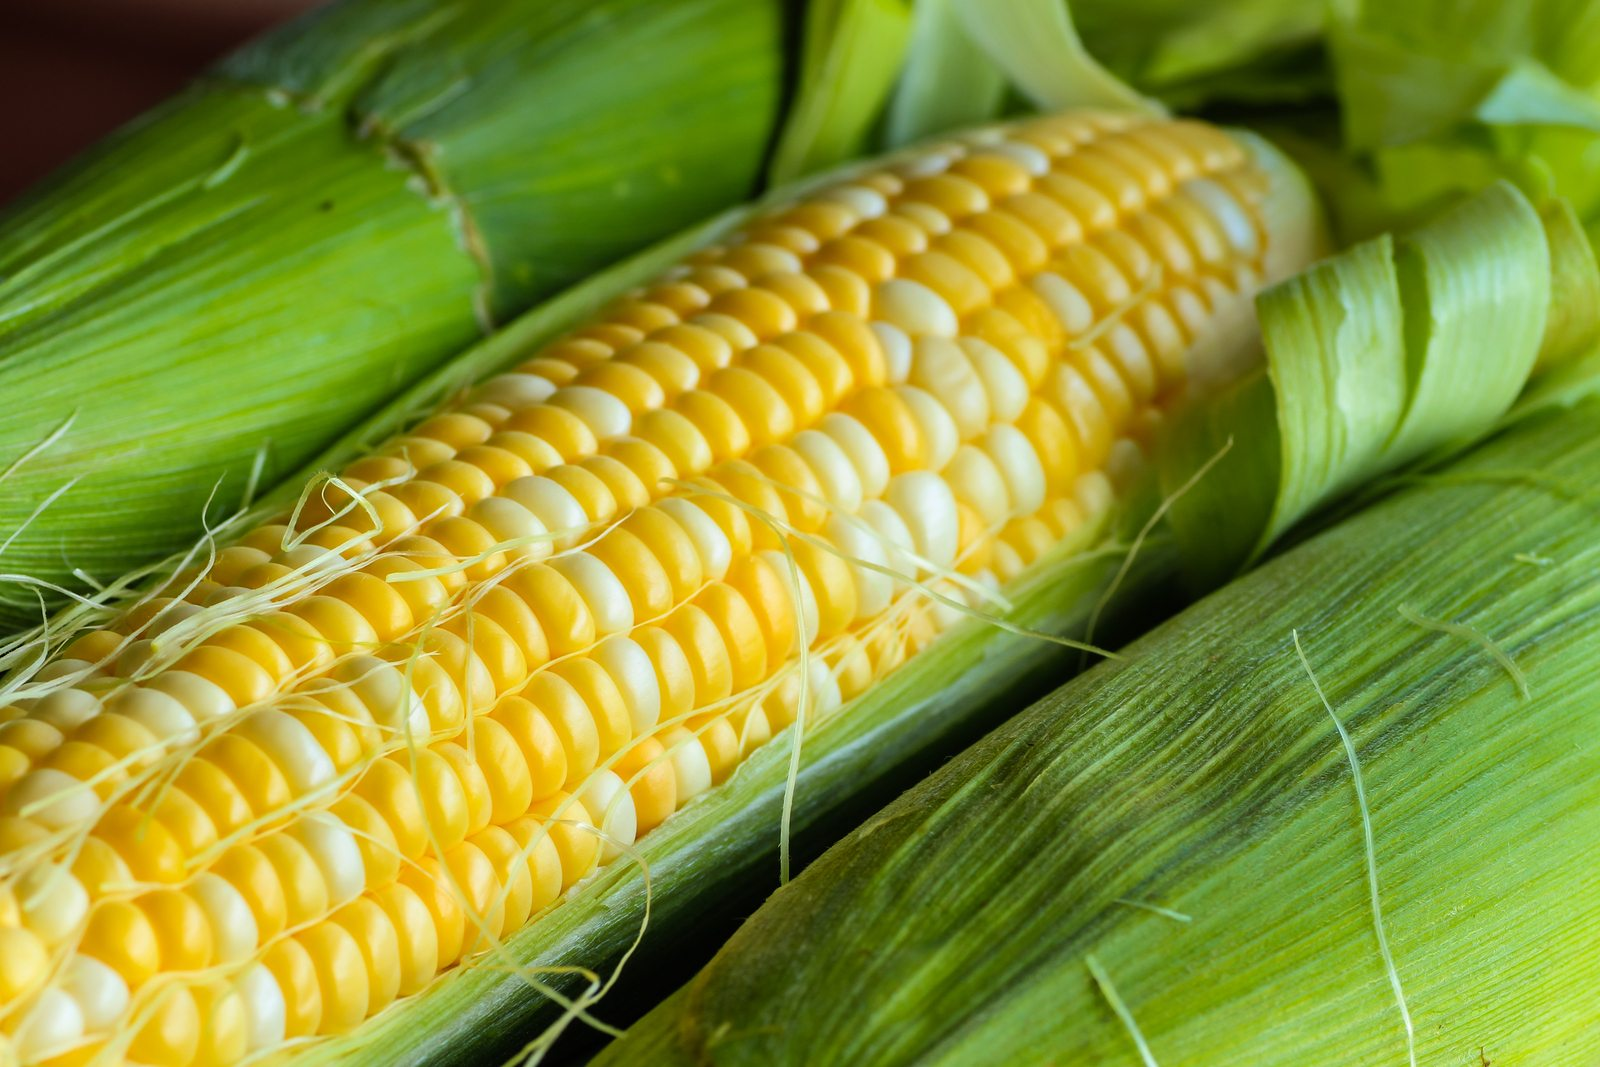 Sweet yellow corn on cob with leaves and husk